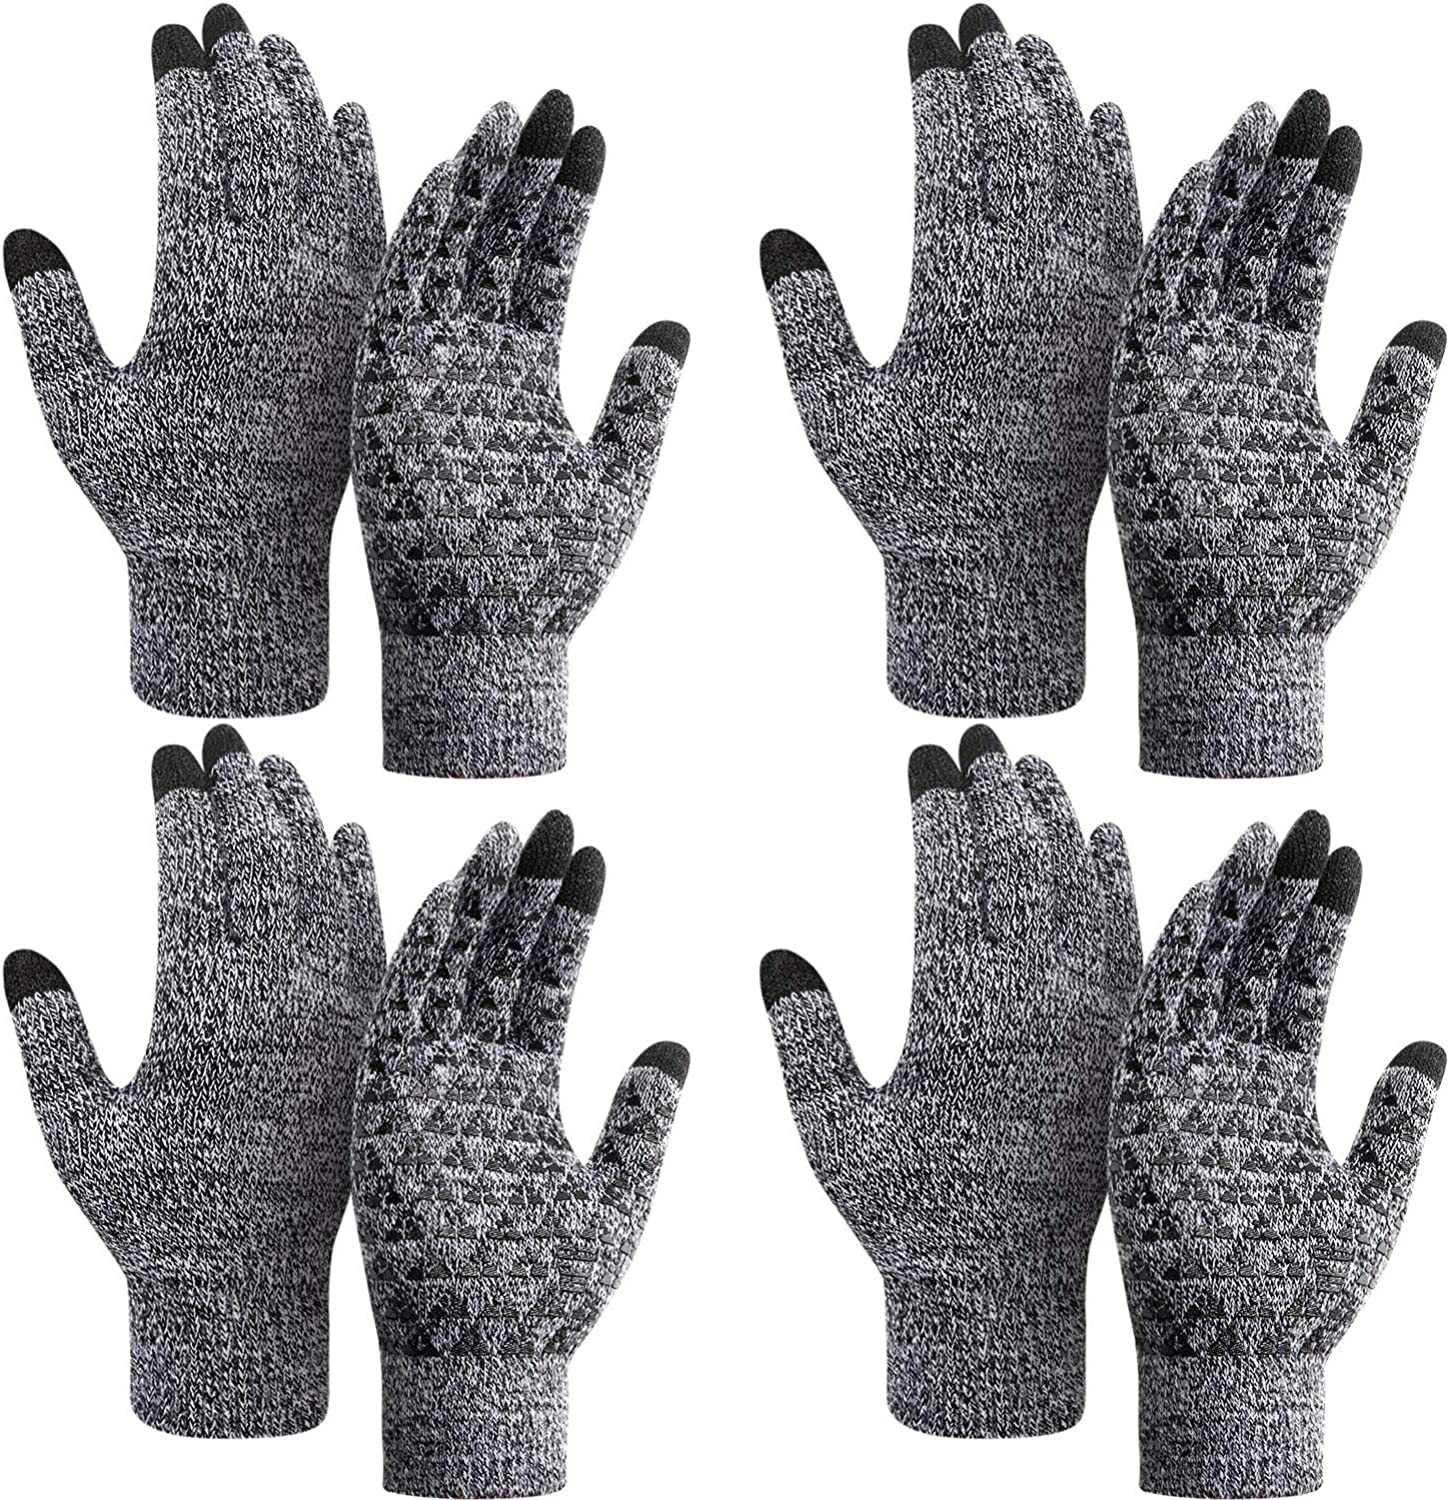 4 Pairs Winter Knit Gloves Knit Touchscreen Warm Gloves Anti-slip Stretchy Gloves for Men and Women (Black, Grey, M)